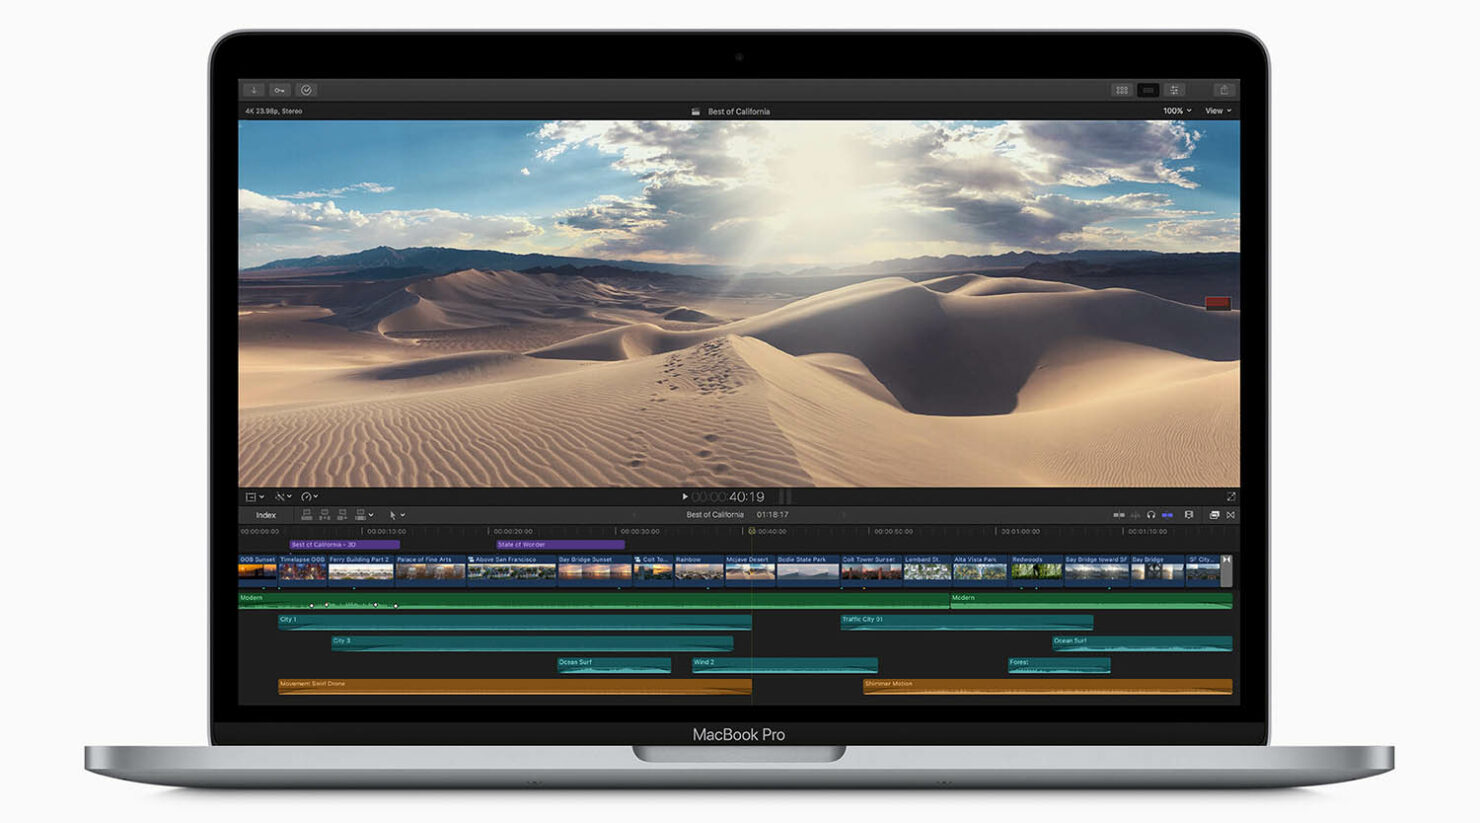 2020 13-inch MacBook Pro vs 2019 13-inch MacBook Pro Specs, Features, and More Compared